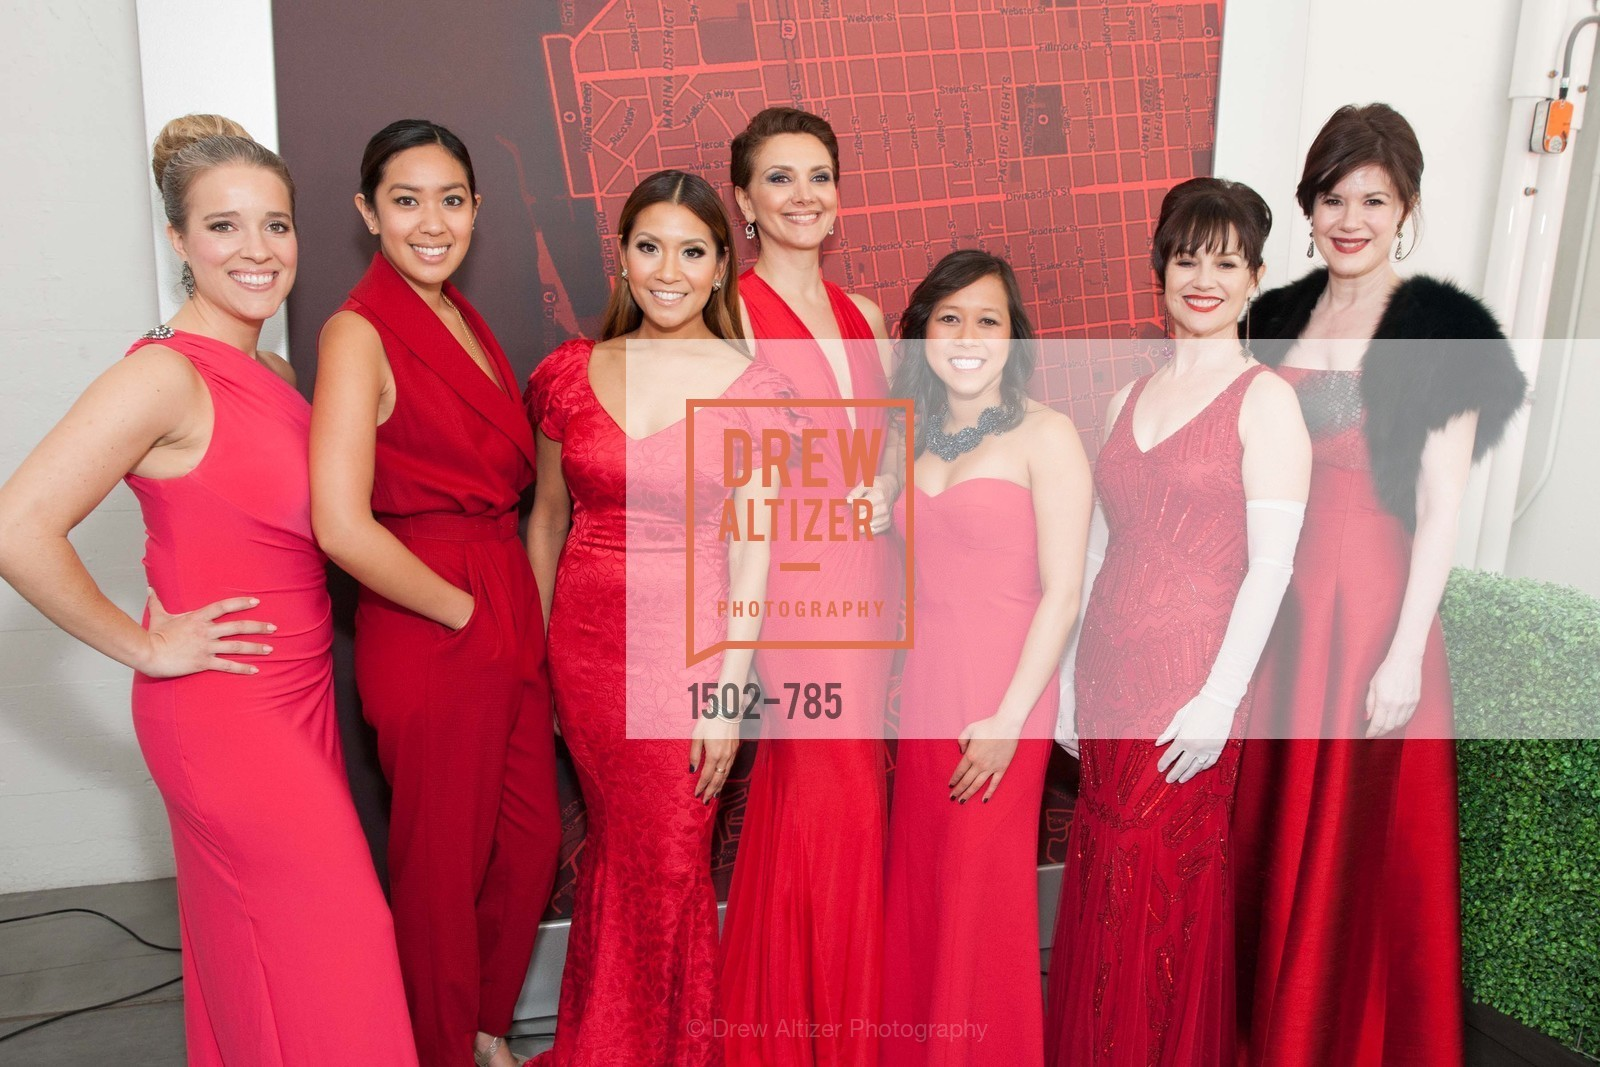 Shelly Carter, Ginie Brown, Lillian Phan, Maryam Ghajar, Julie Le, V'Anne Singleton, Elaine Mellis, 2015 RED CROSS Gala, US, April 11th, 2015,Drew Altizer, Drew Altizer Photography, full-service agency, private events, San Francisco photographer, photographer california